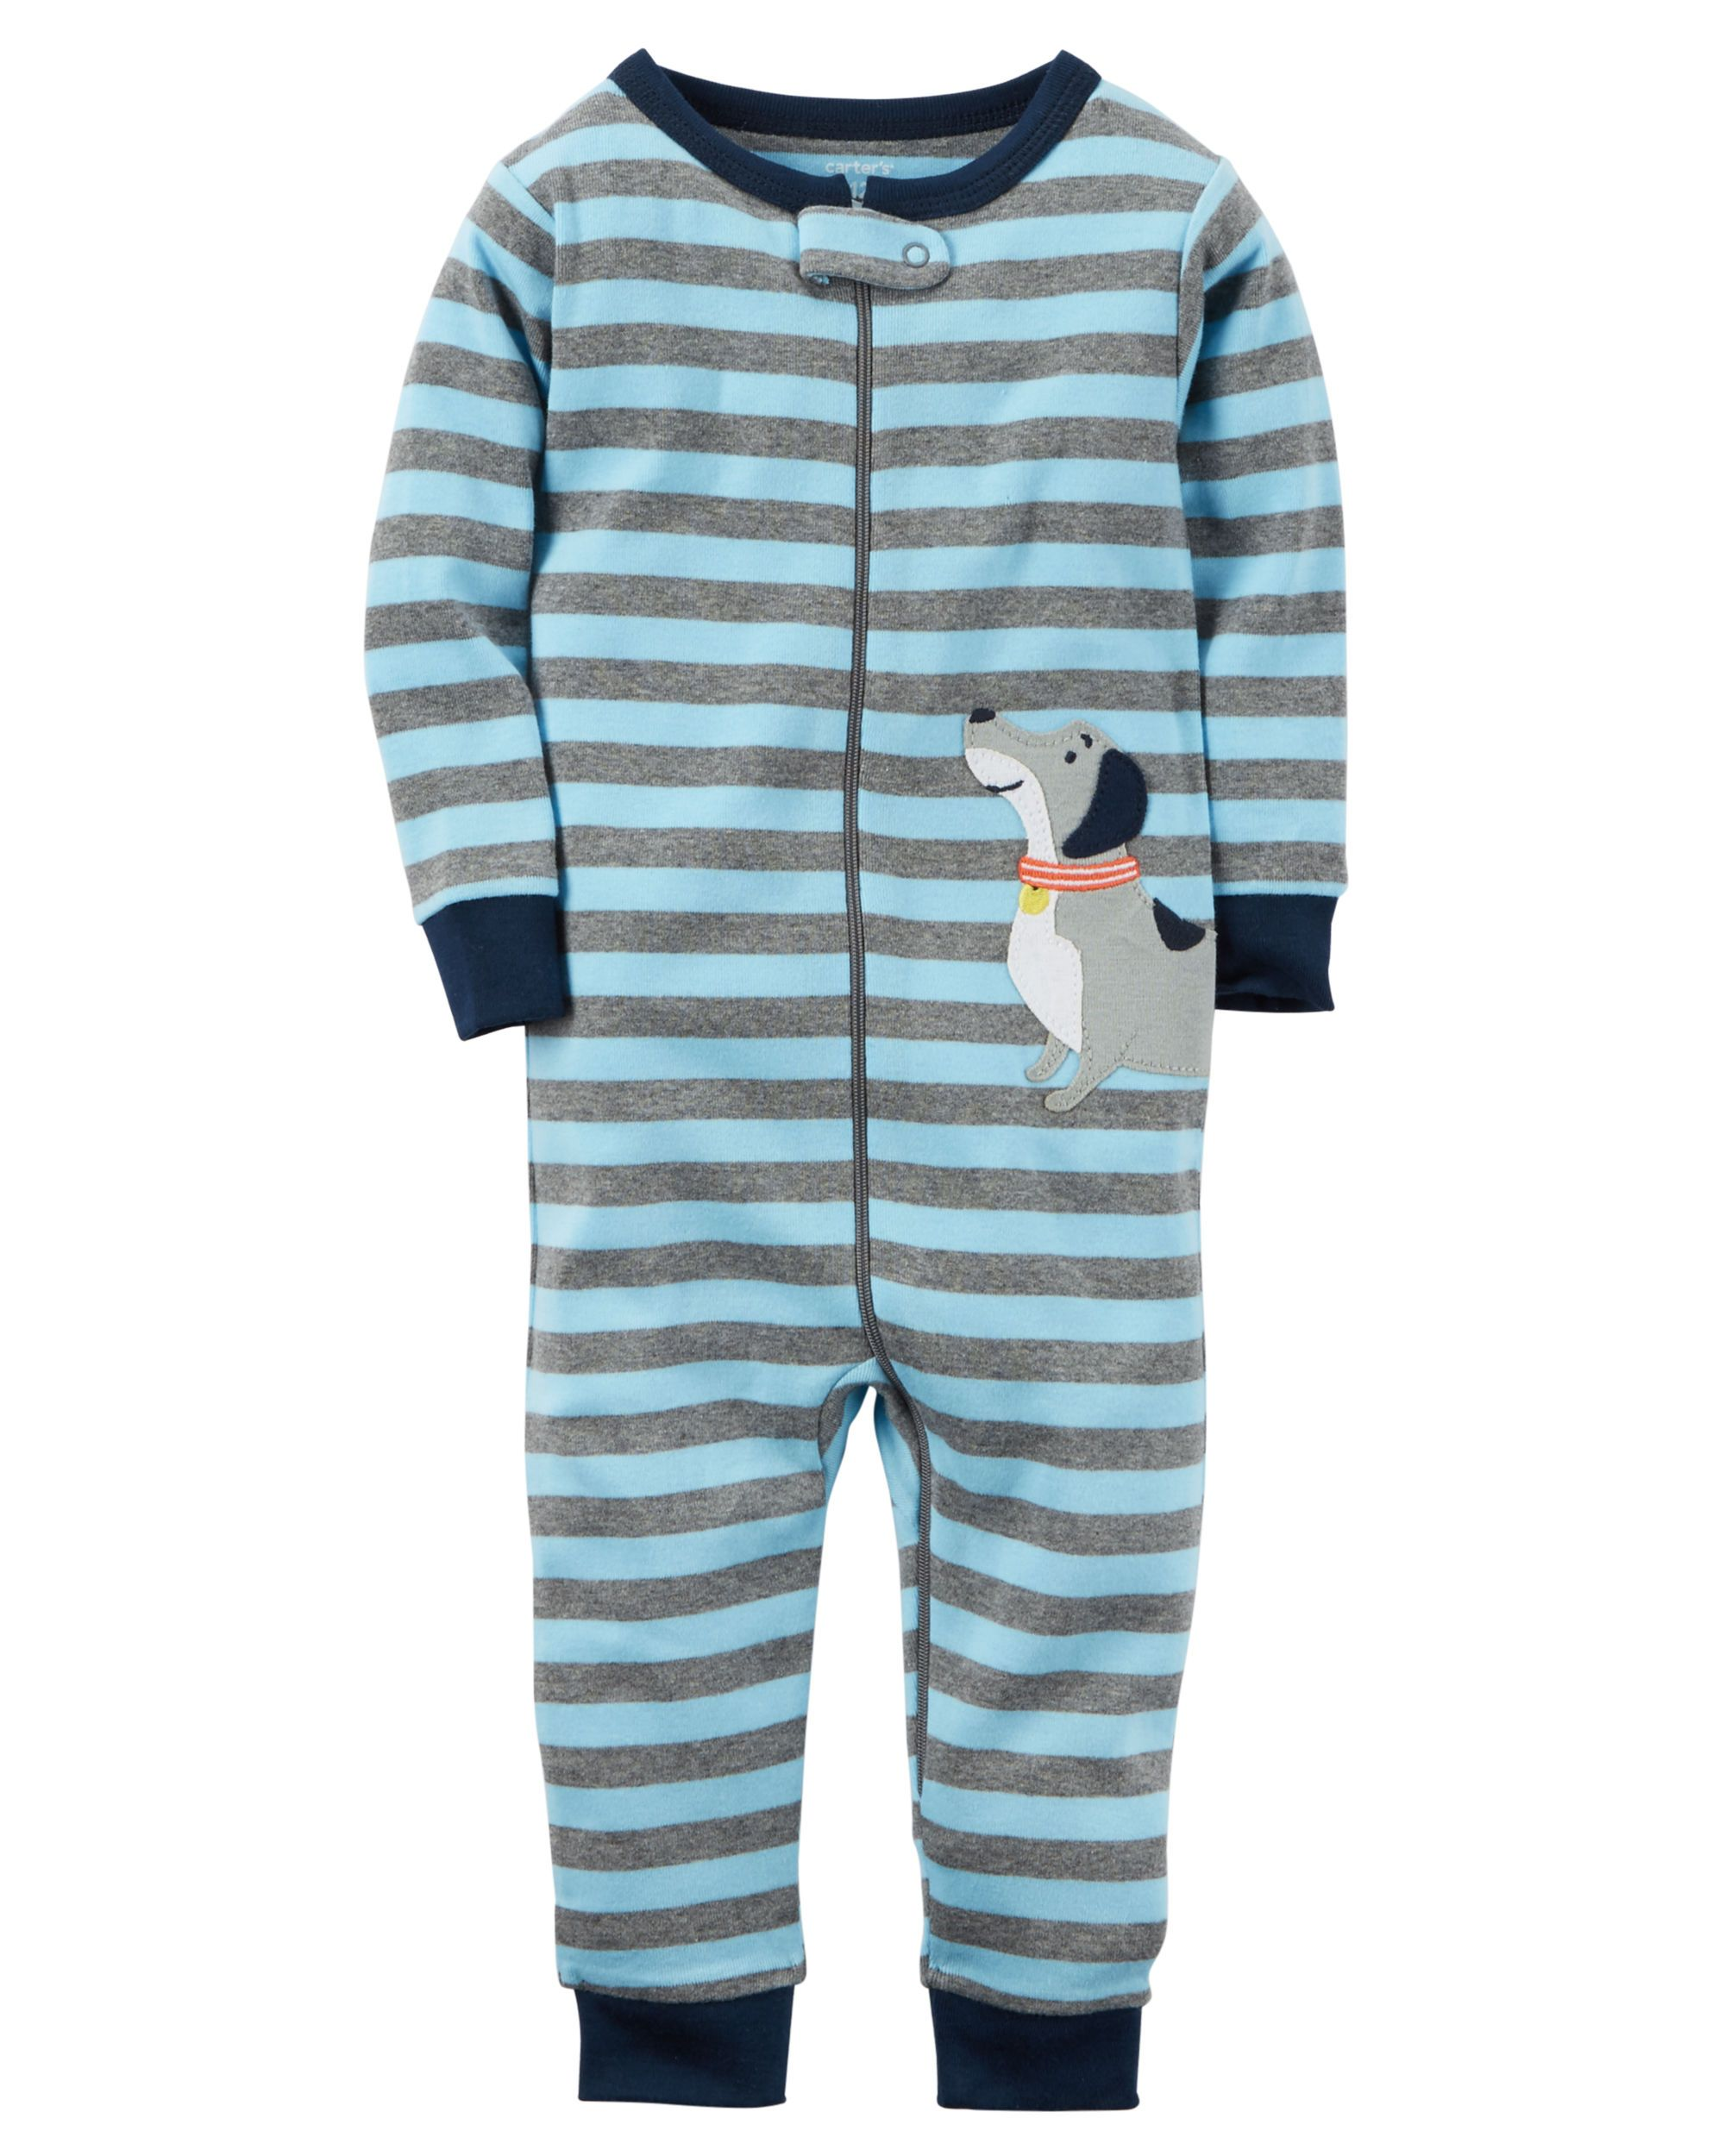 a986d2f076 Baby Boy 1-Piece Snug Fit Cotton Footless PJs